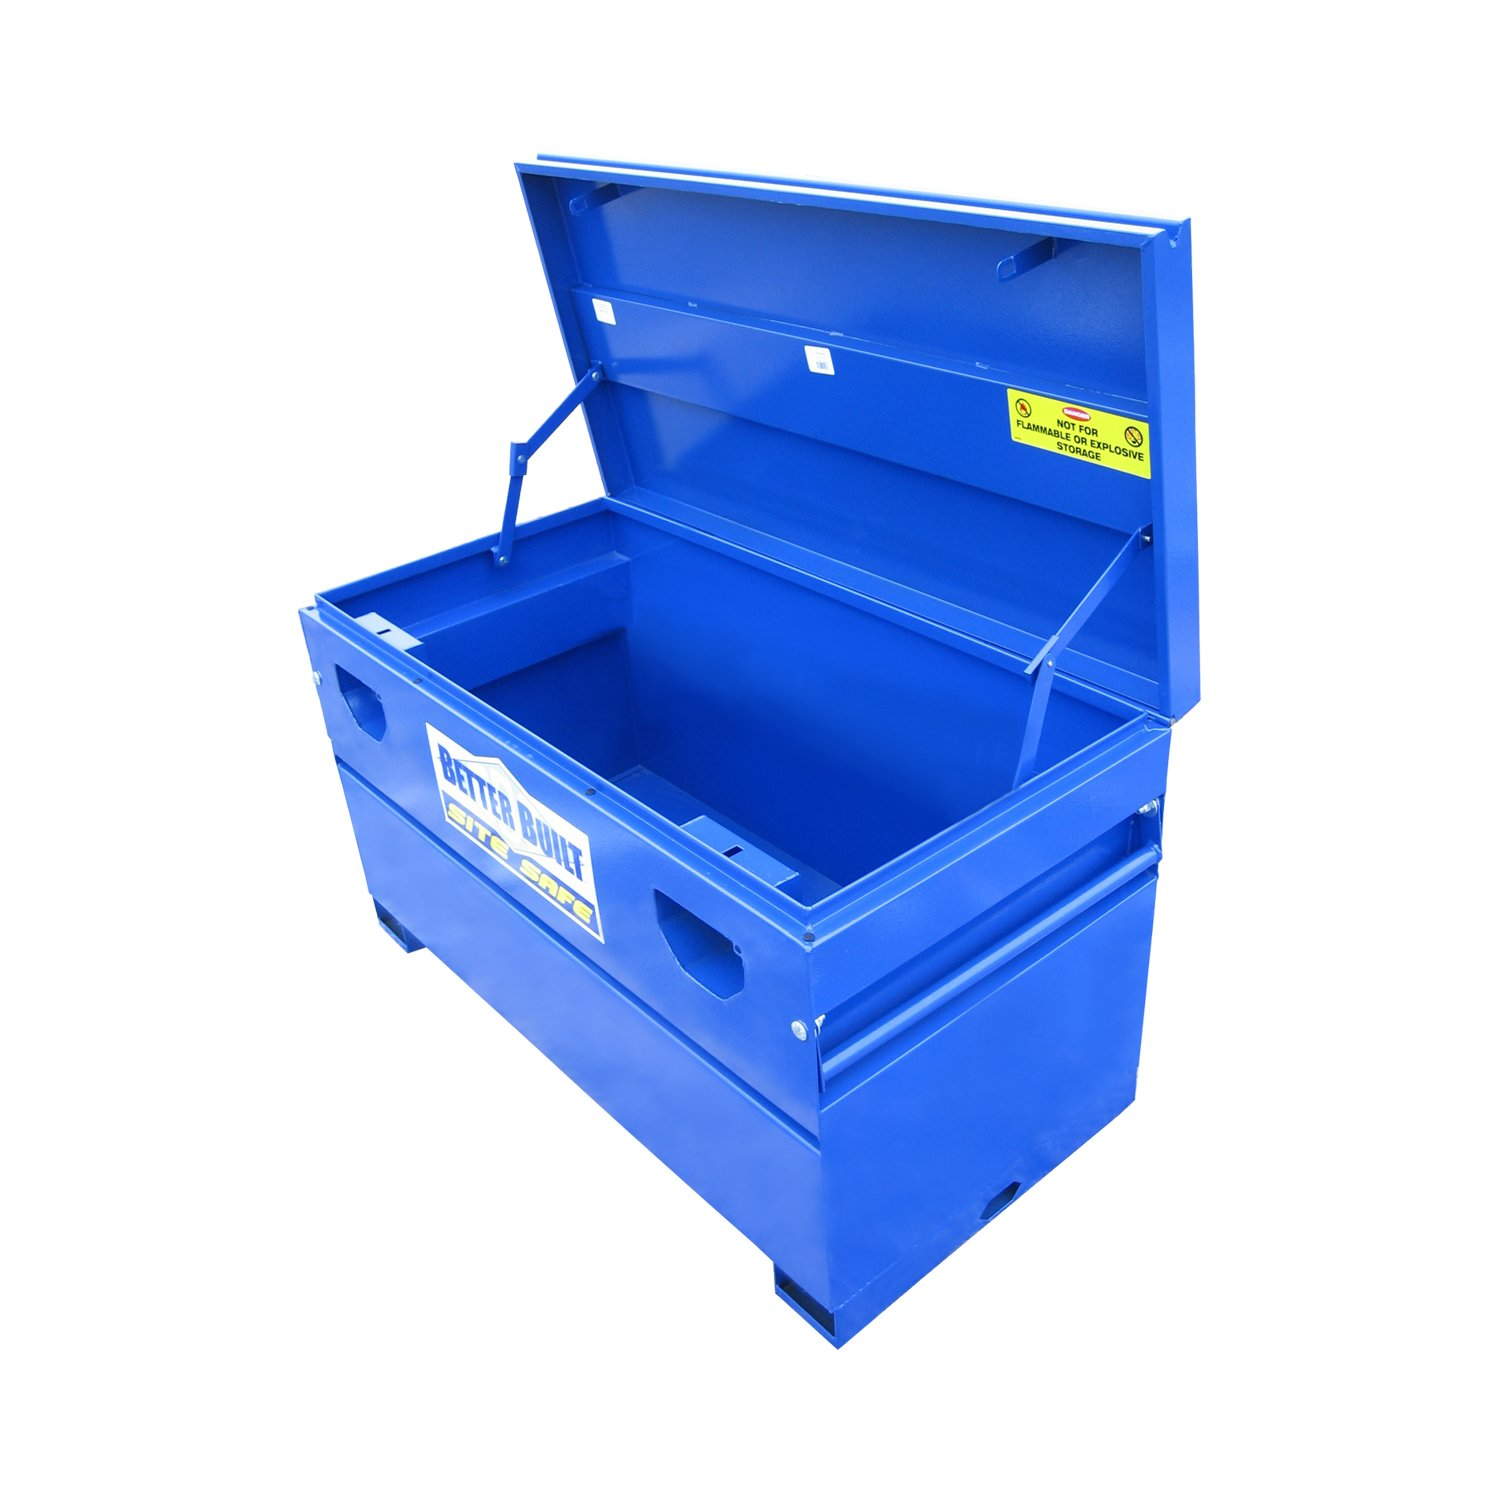 Better Built 37211296 Site Safe Tool Box L 48 in. x W 24 in. x H 25 in. Blue Powder Coated Steel Site Safe Tool Box